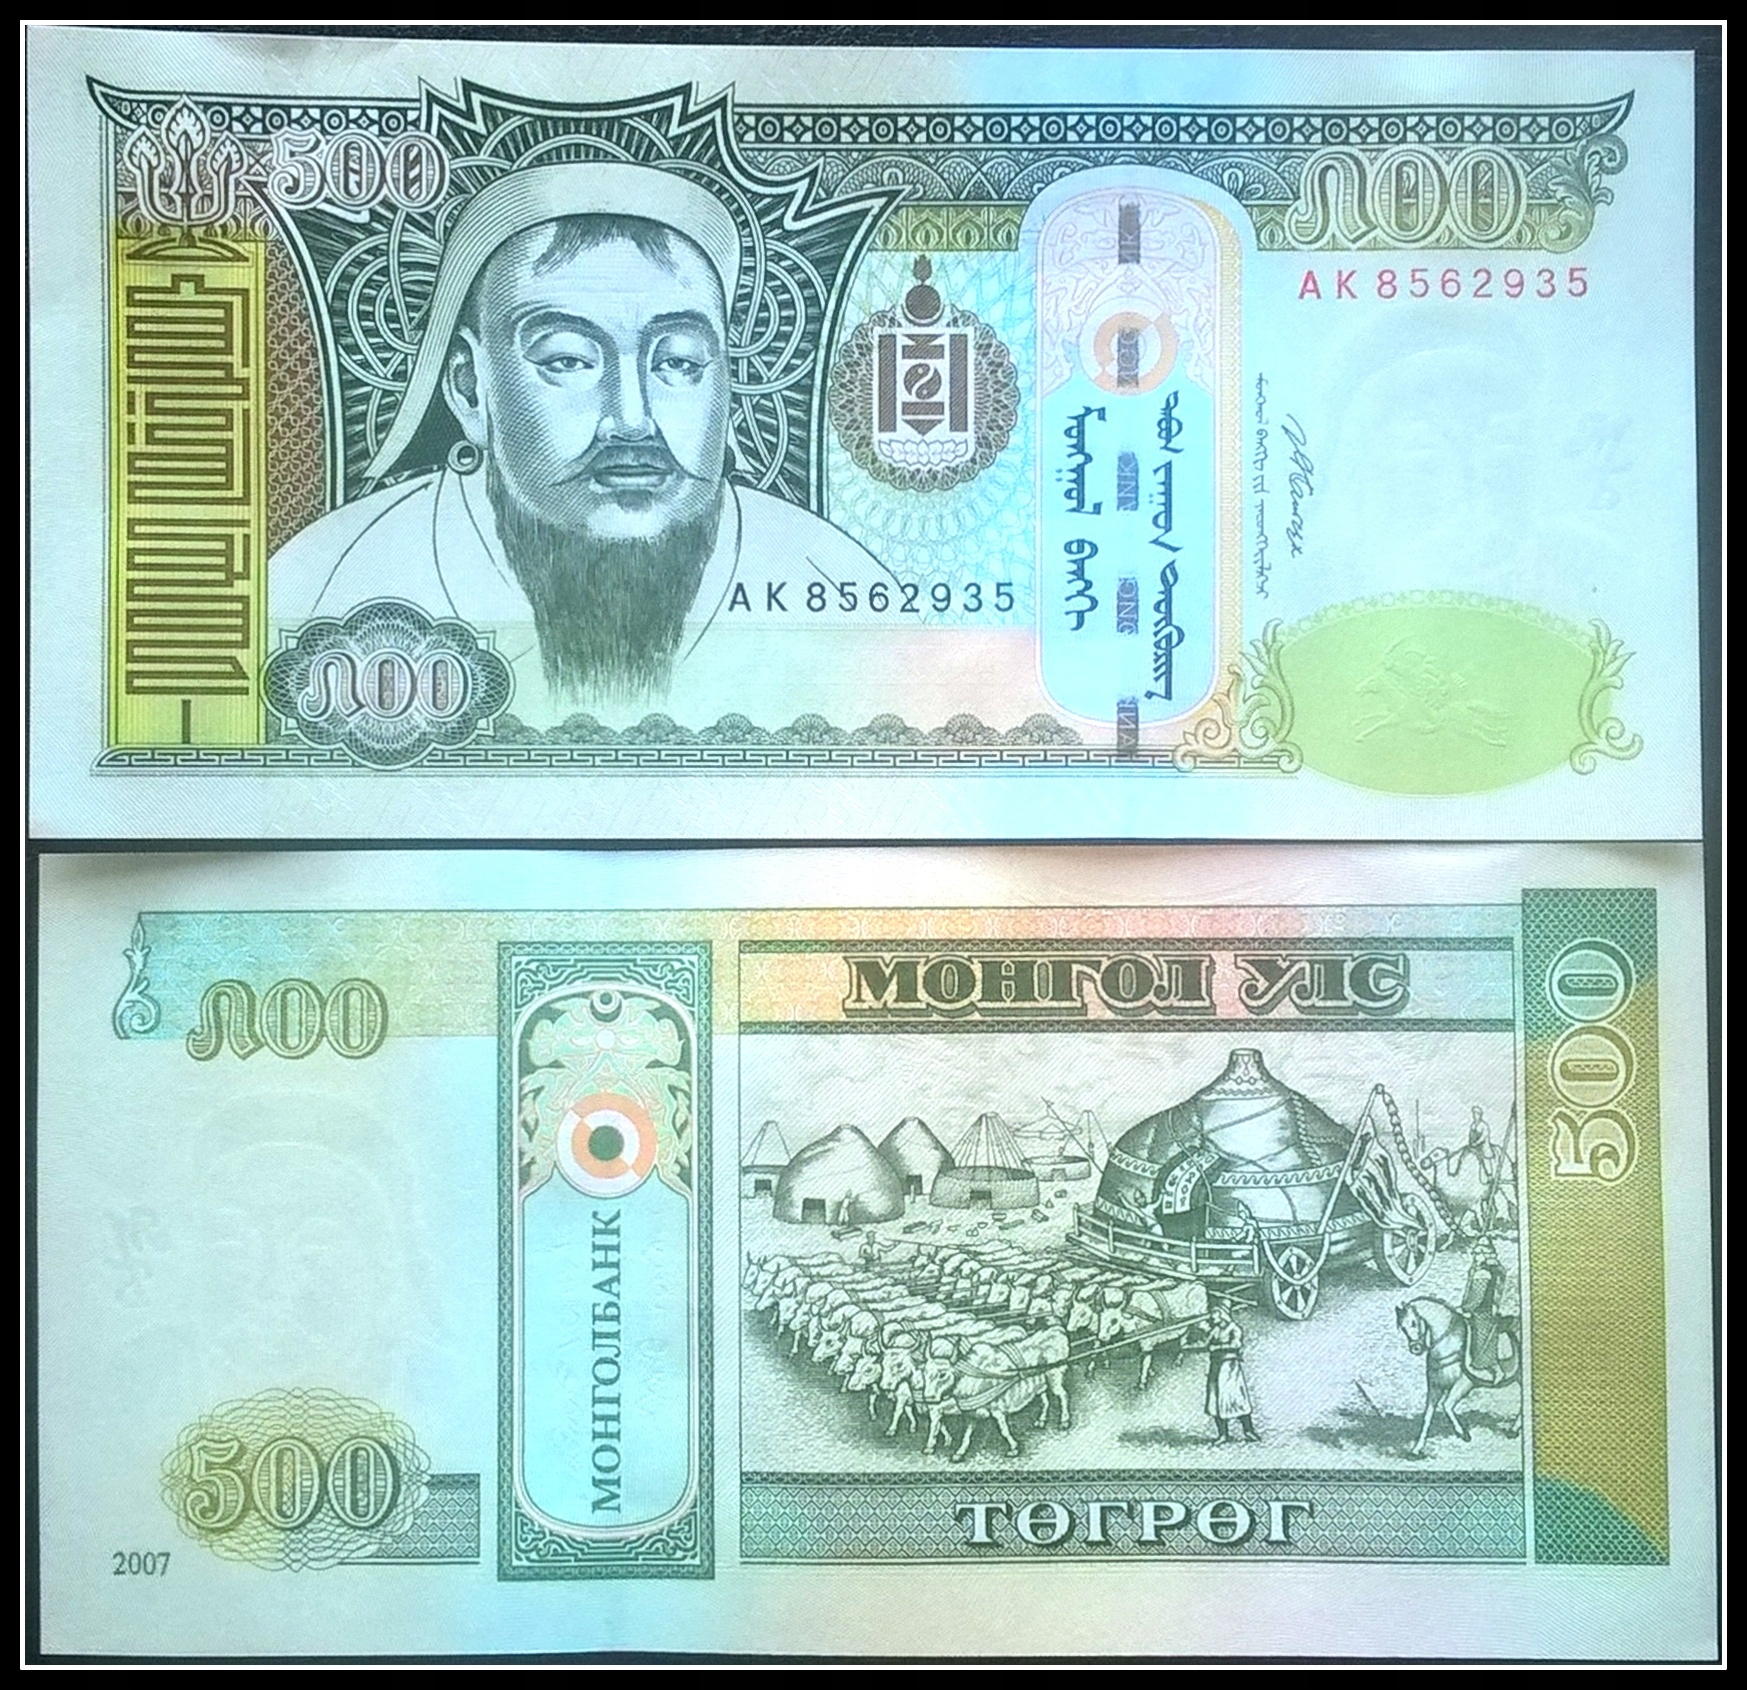 Banknot Mongolia 500 Tugrig 2007r. UNC